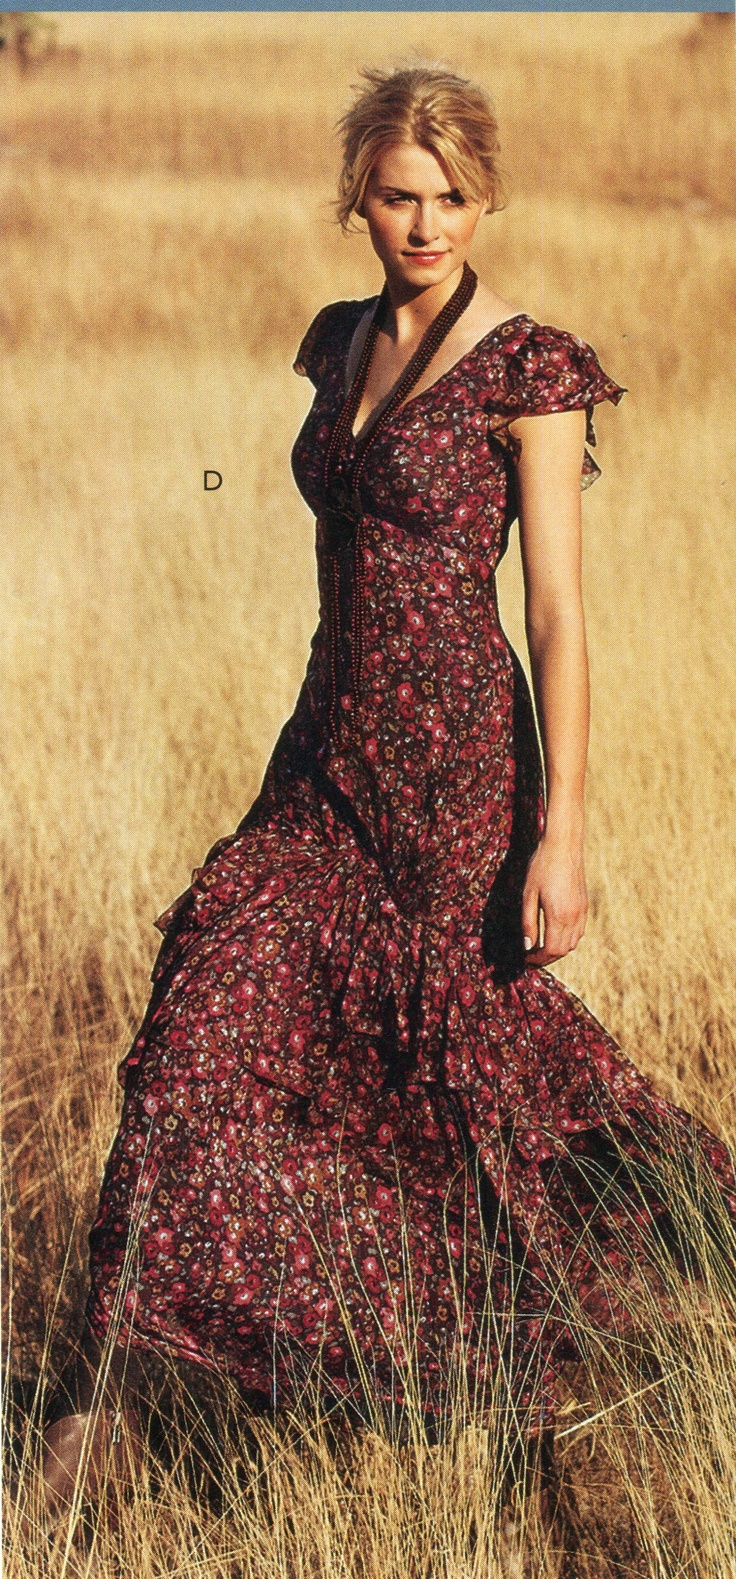 So fun to be walking through a field in a country dress with flutter sleeves.